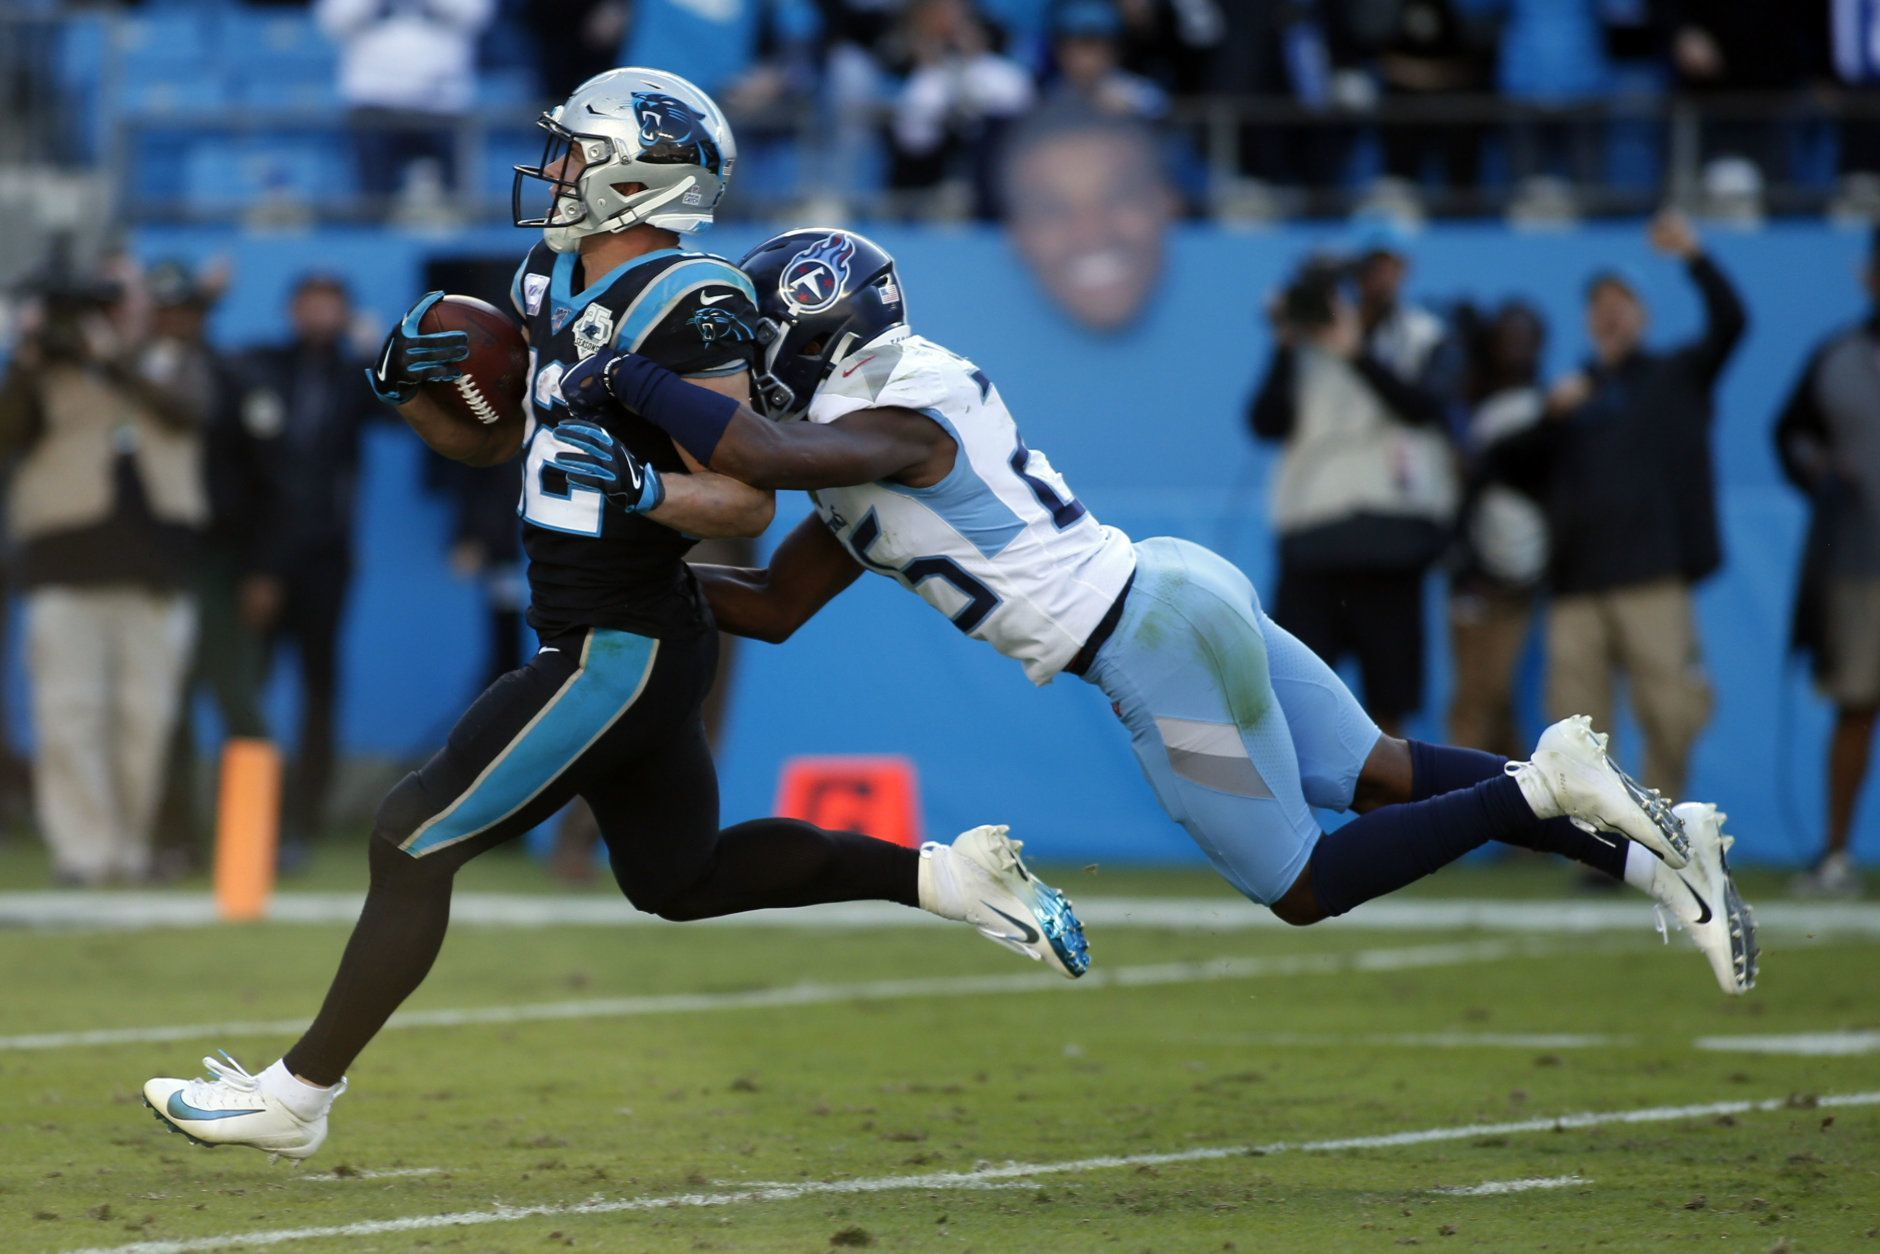 """<p><em><strong>Titans 20</strong></em><br /> <em><strong>Panthers 30</strong></em></p> <p><a href=""""https://www.espn.com/nfl/recap?gameId=401128078"""" target=""""_blank"""" rel=""""noopener"""">Carolina thinks Christian McCaffrey is the MVP</a> … and I don&#8217;t think they&#8217;re wrong.</p>"""